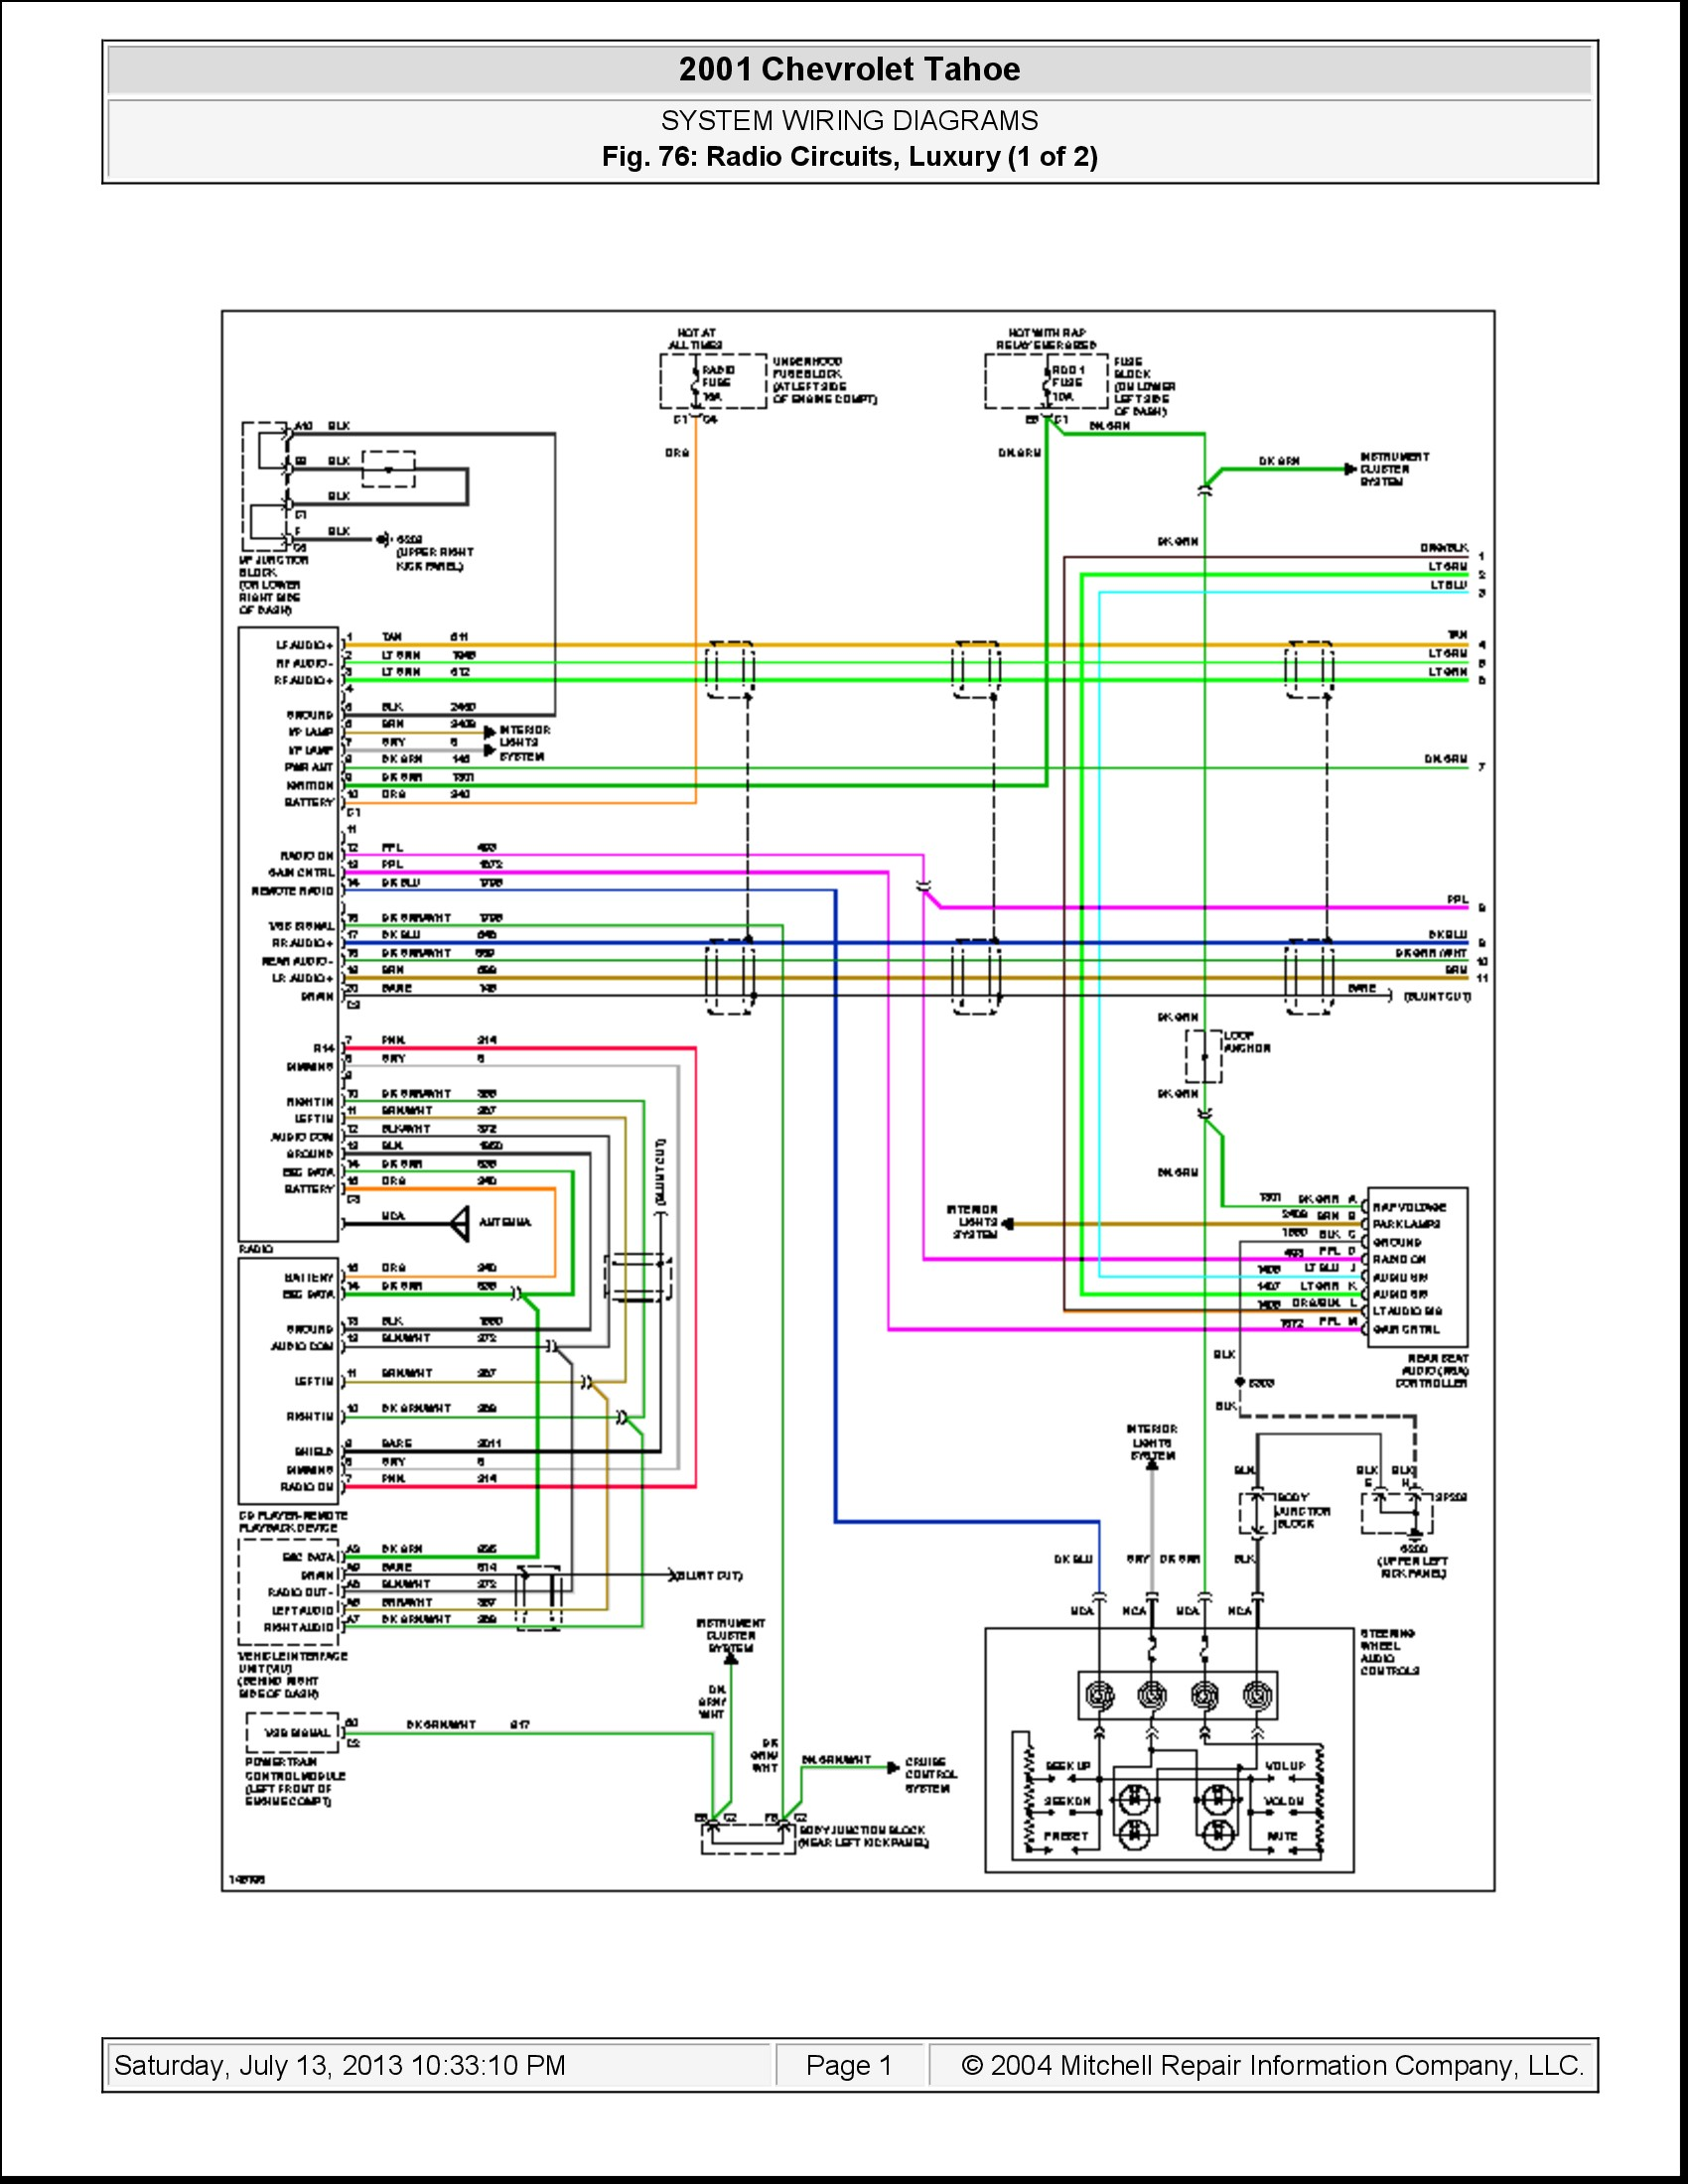 WRG-7069] Stereo Wiring Diagram For Toyota Rav 4 on